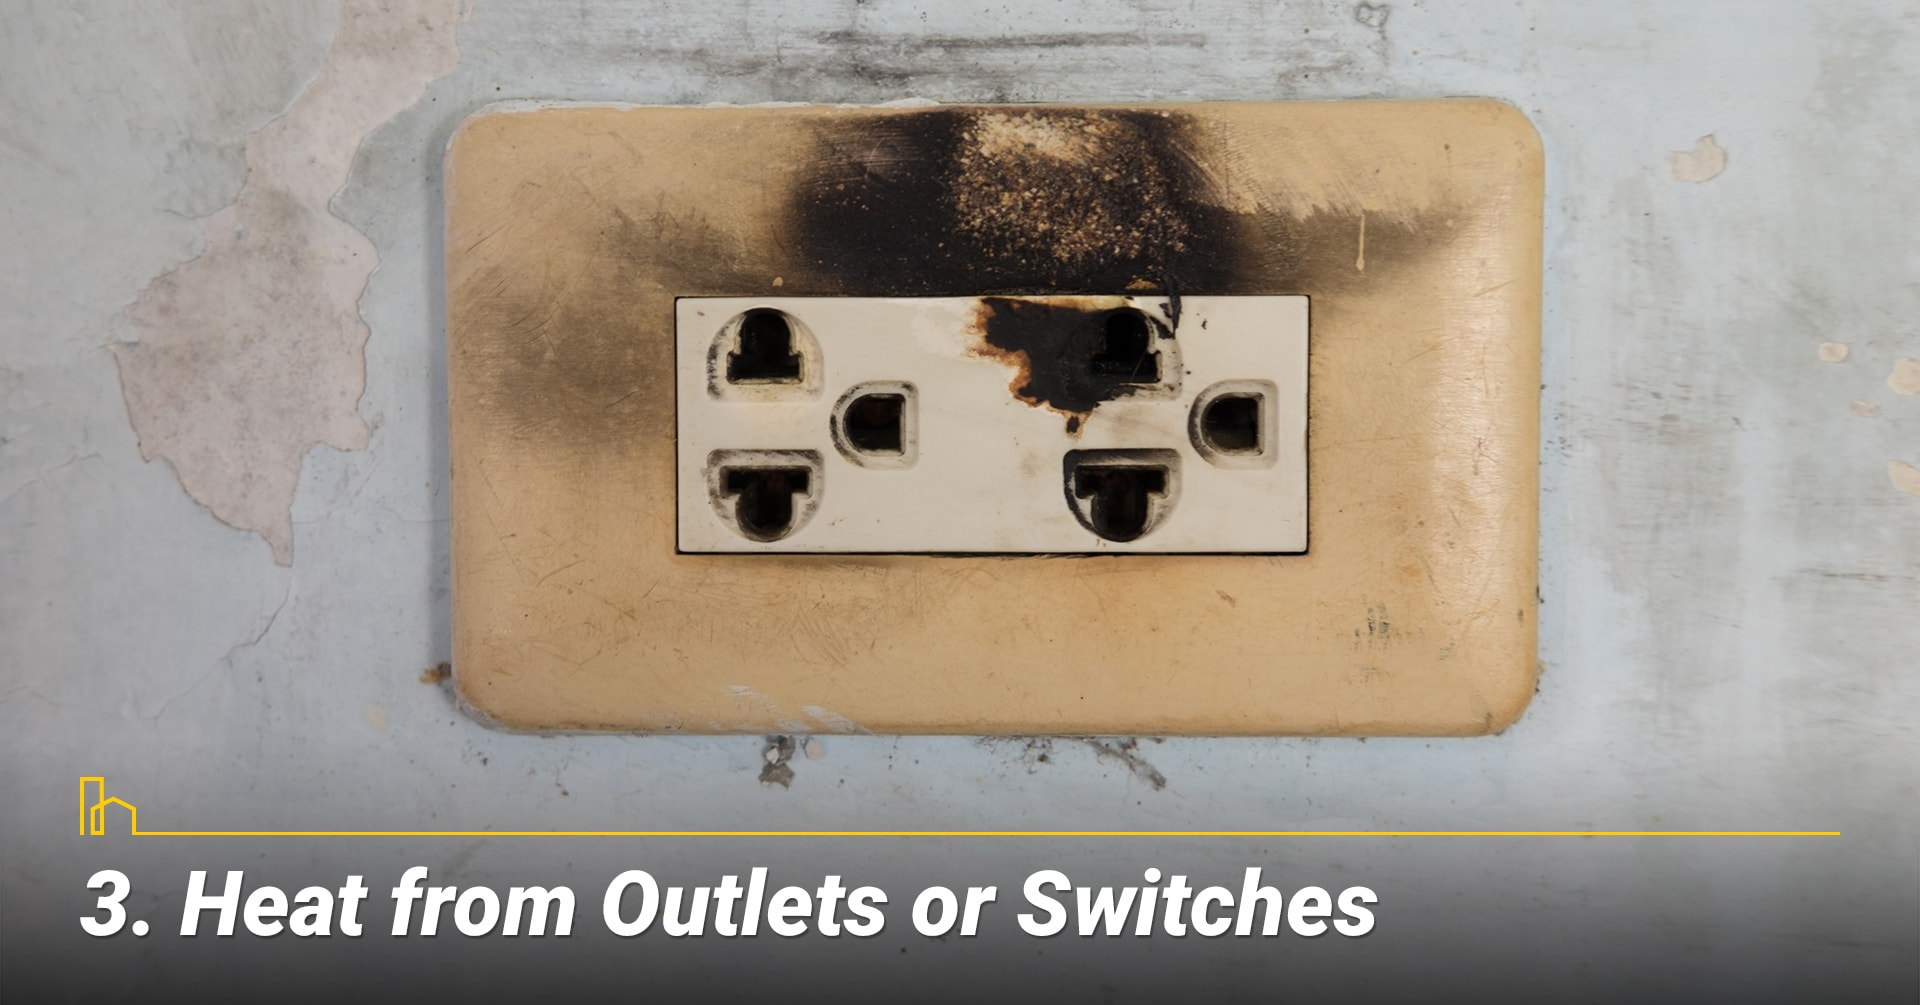 Heat from Outlets or Switches, raising temperature at outlets